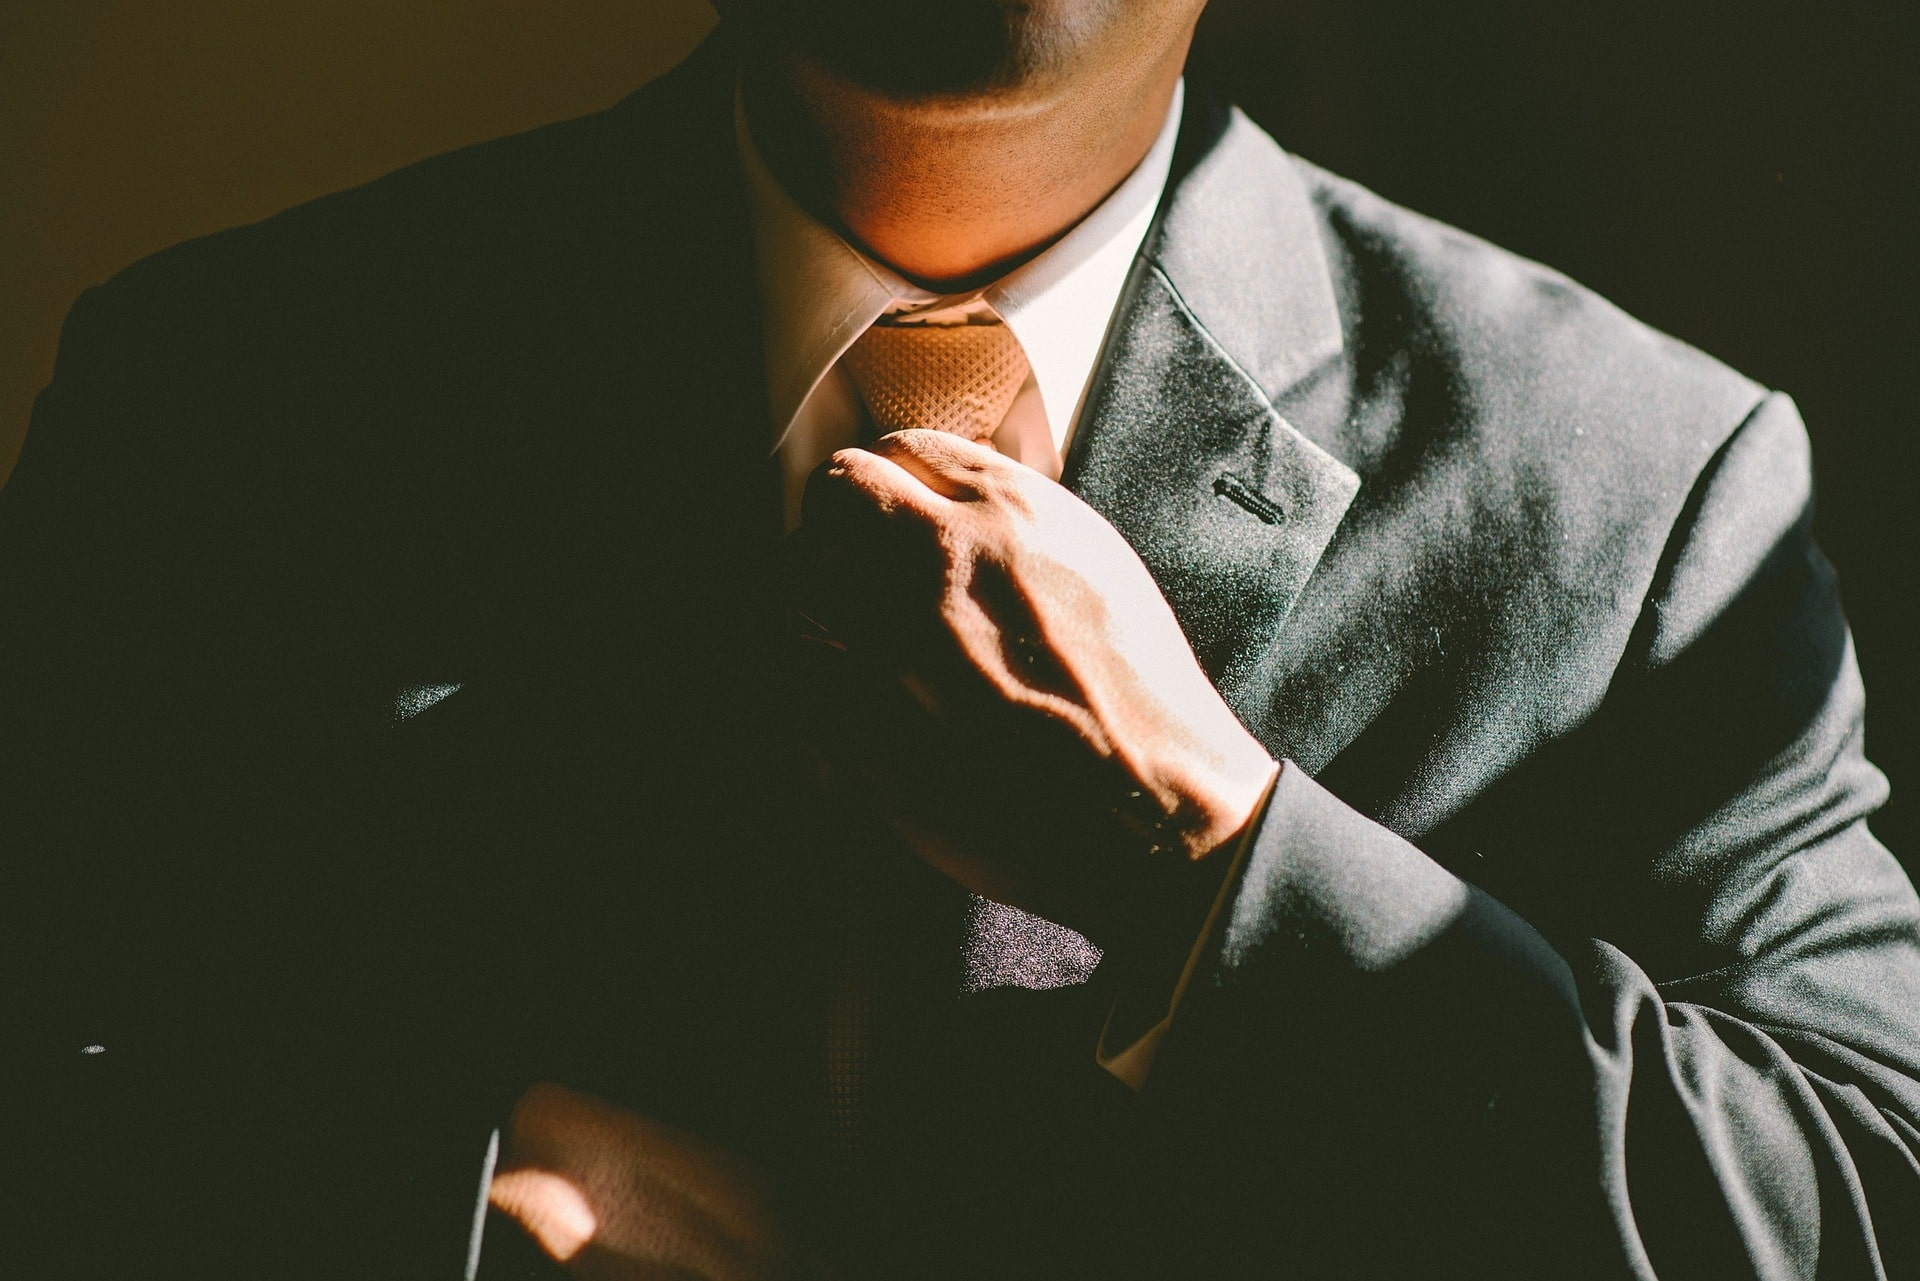 Tips to Take Ownership of Your Career Early On